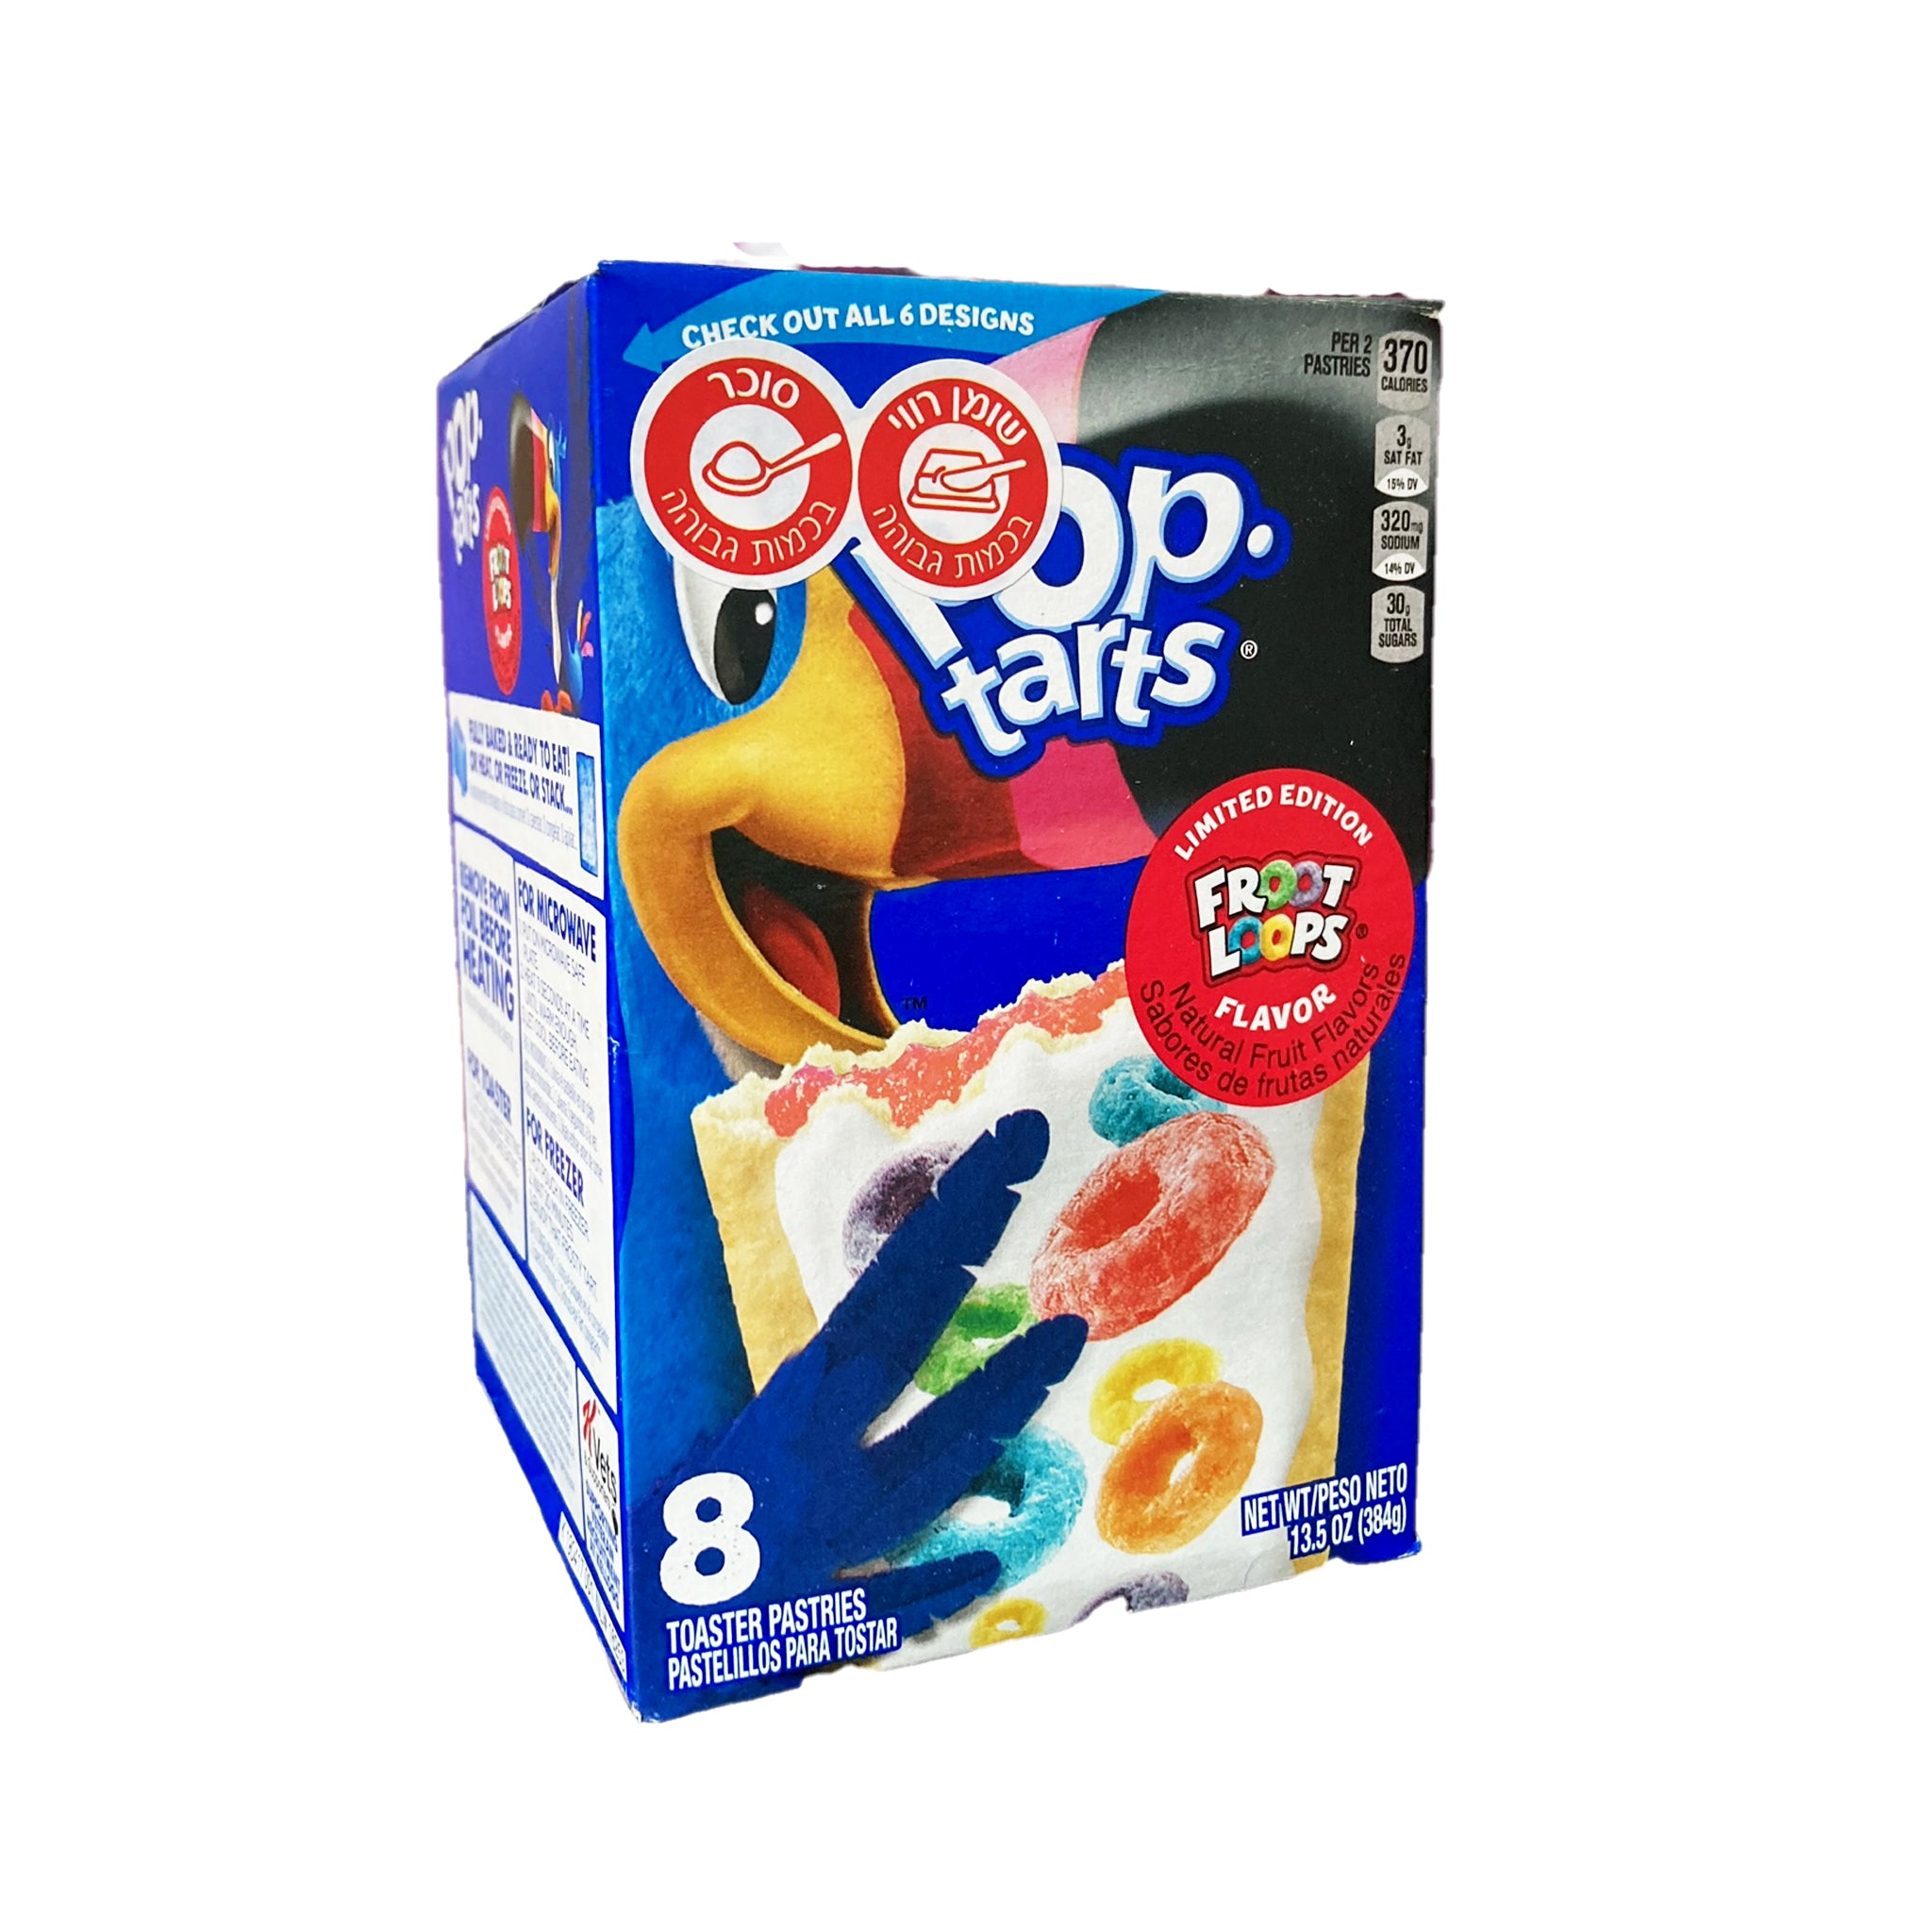 Pop Tarts Fruit loops פופטארטס פרוט לופס טעימים